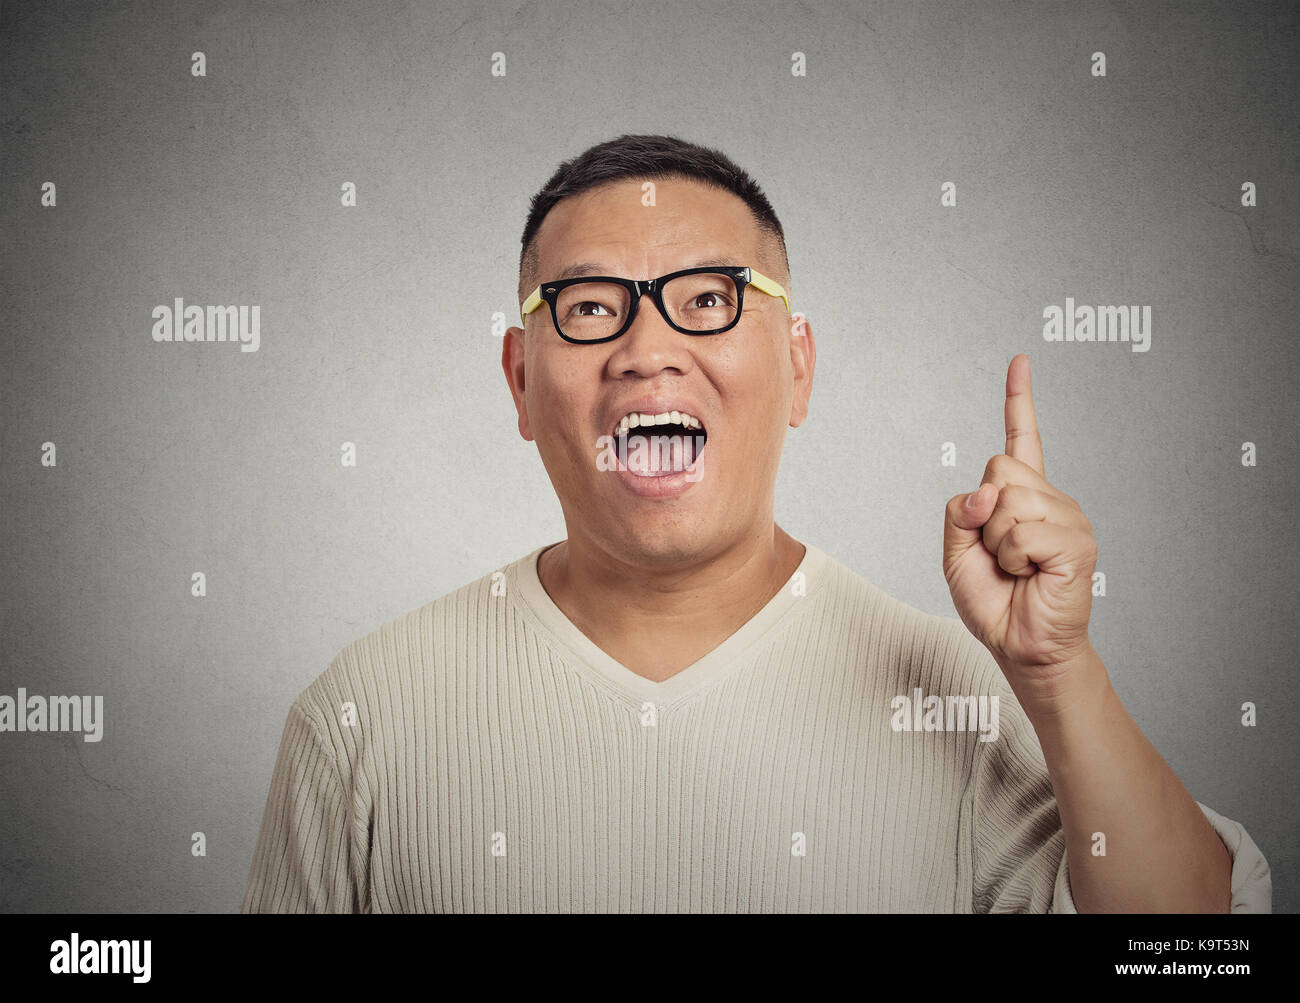 Portrait young man has an idea, pointing with finger up isolated on grey wall background. Excited guy with solution - Stock Image